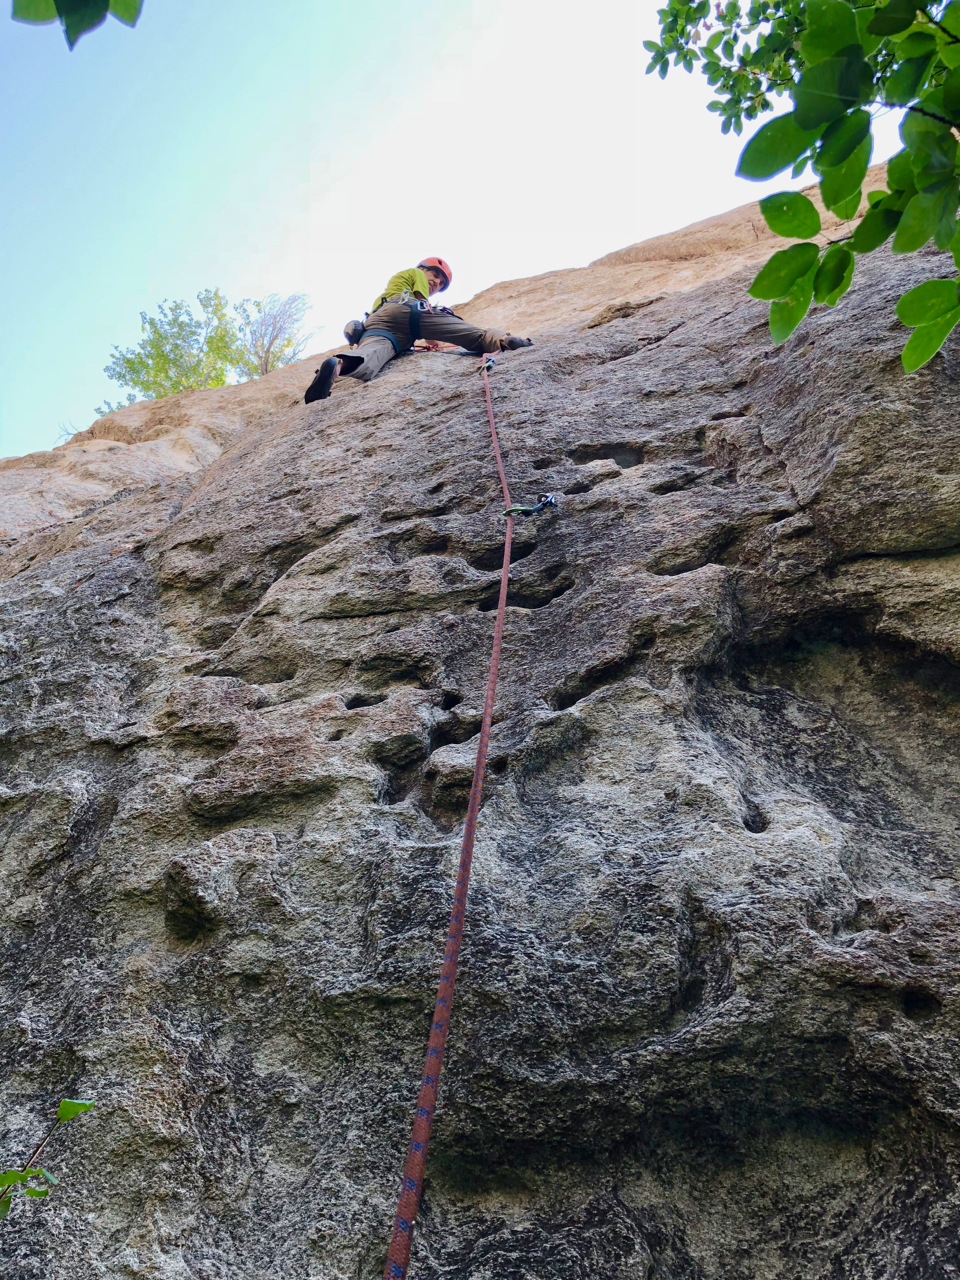 Dynamo Hum (5.10c). A good example of the unusual pocketed granite found on some routes.